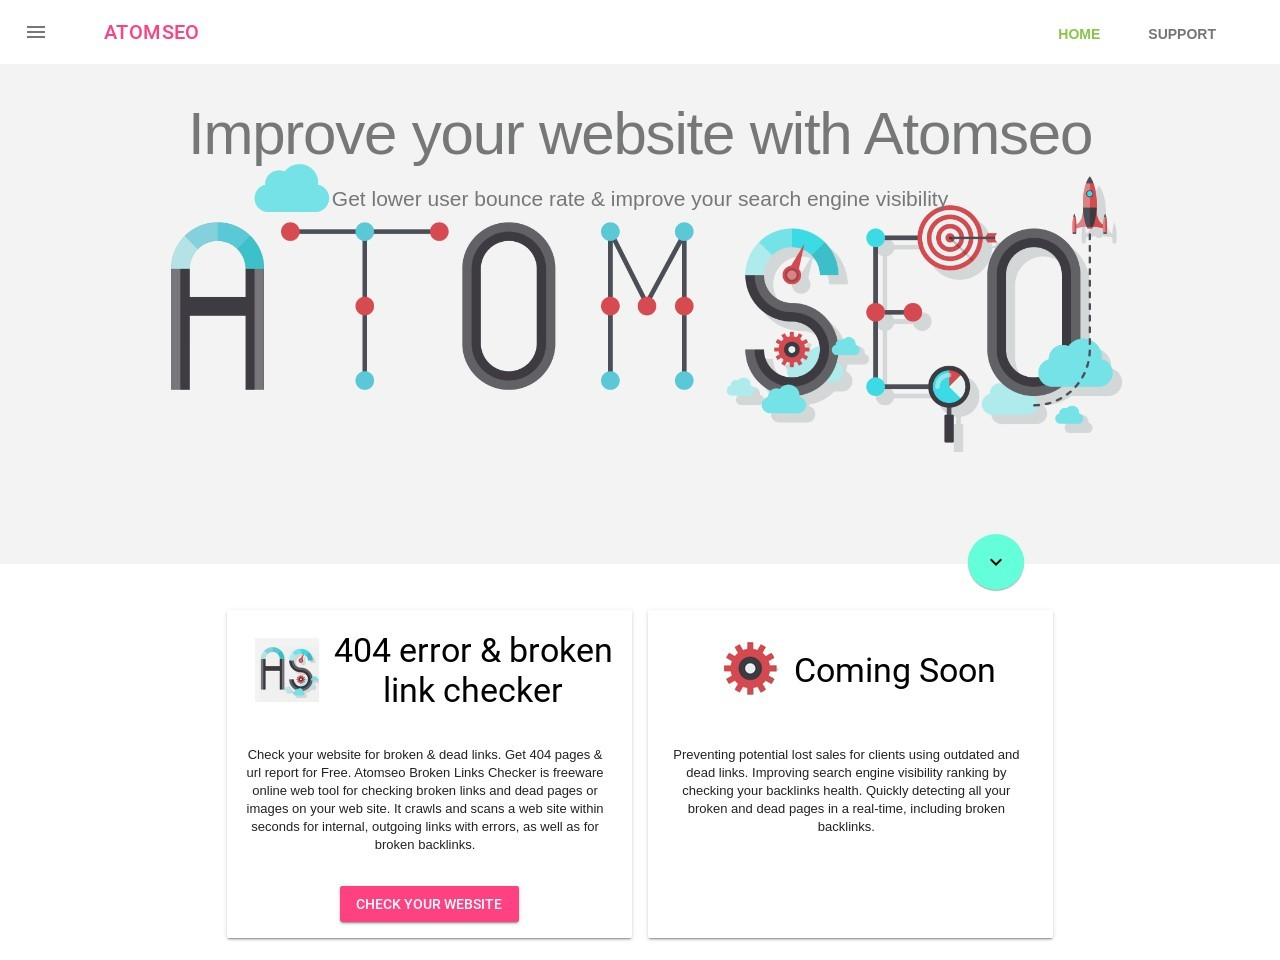 ATOMSEO